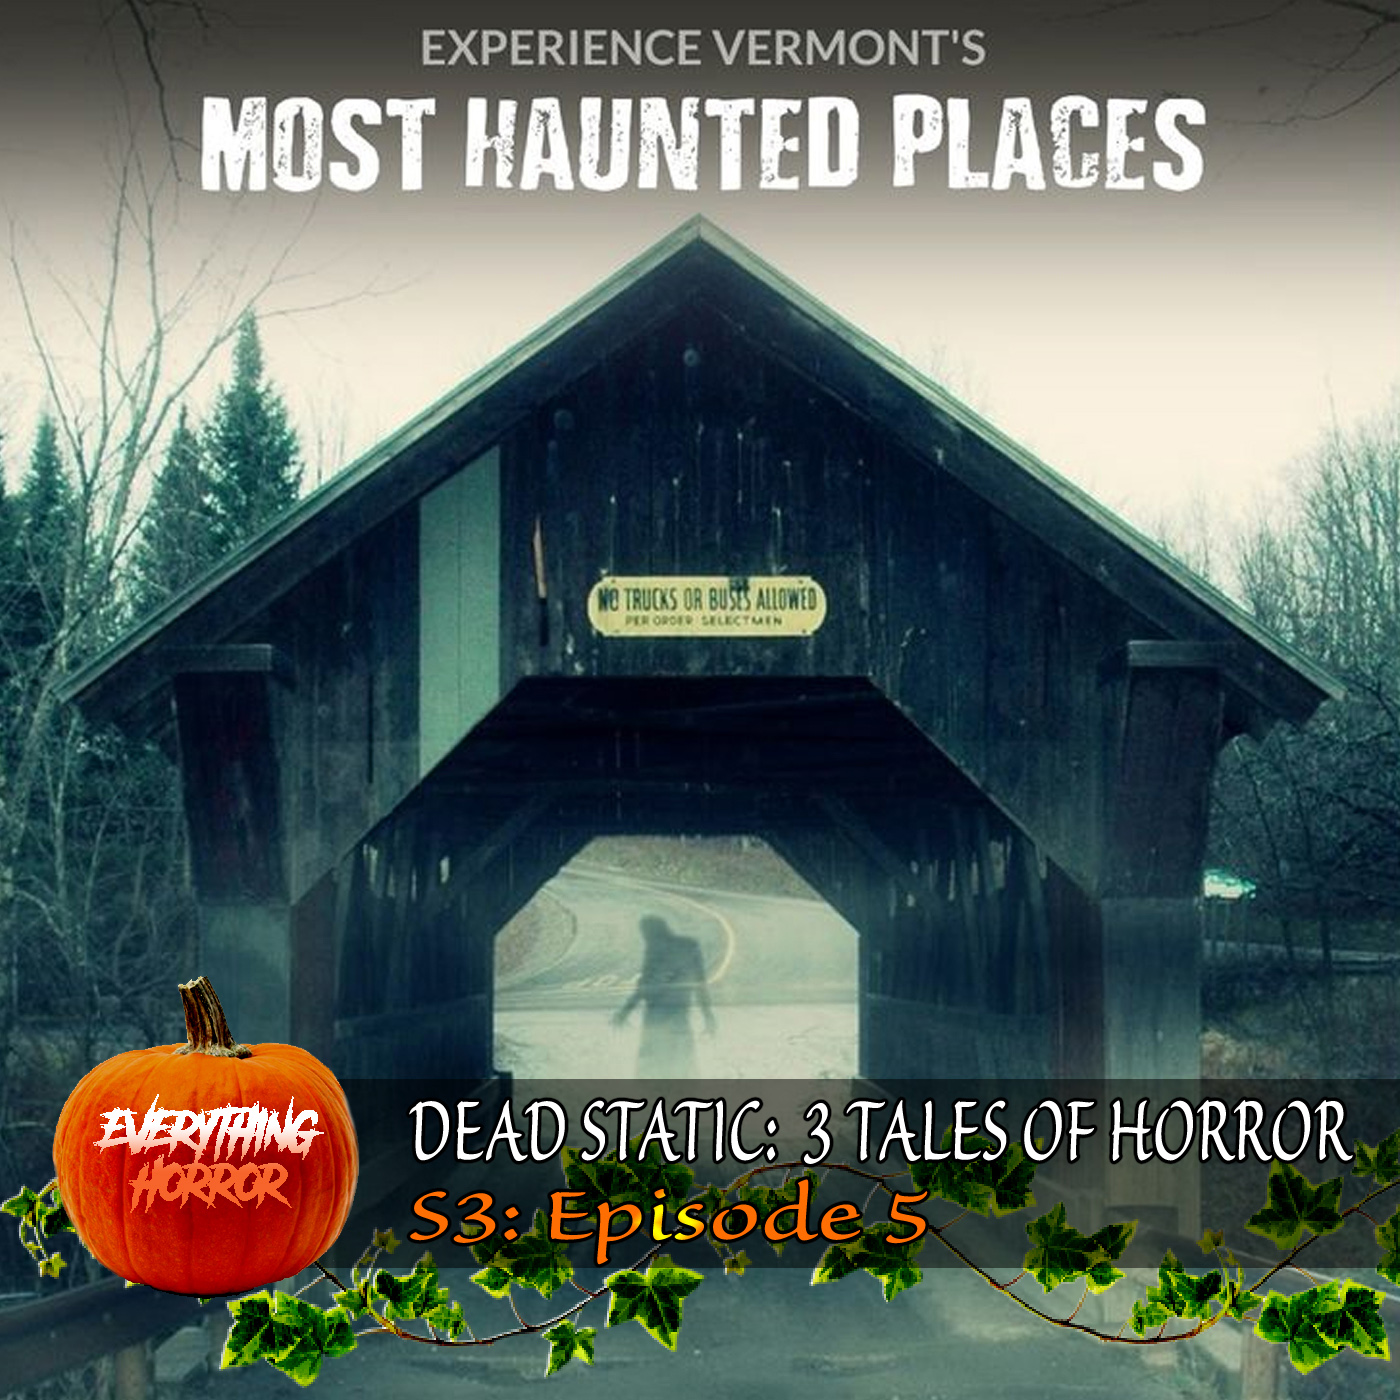 S3: Ep 5. DEAD STATIC: 3 Tales of Horror